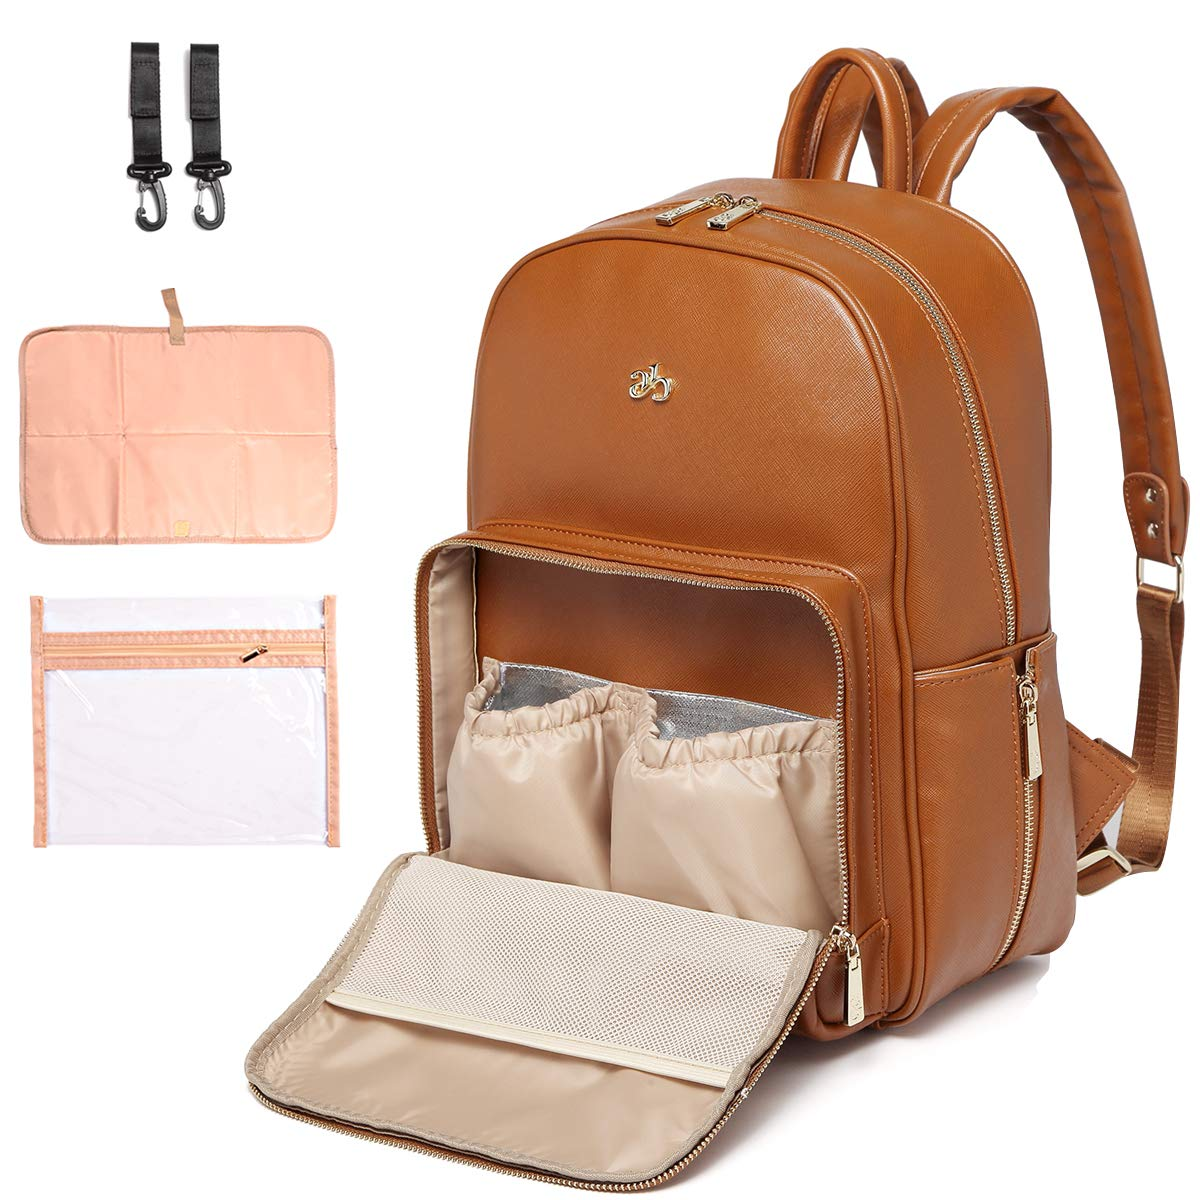 PU Leather Diaper Bag Backpack Nappy Bag Baby Bags for Mom Unisex Maternity Diaper Bag with Stroller Hanger Thermal Pockets Adjustable Shoulder Straps Water Proof  LargeCapacity (Brown)